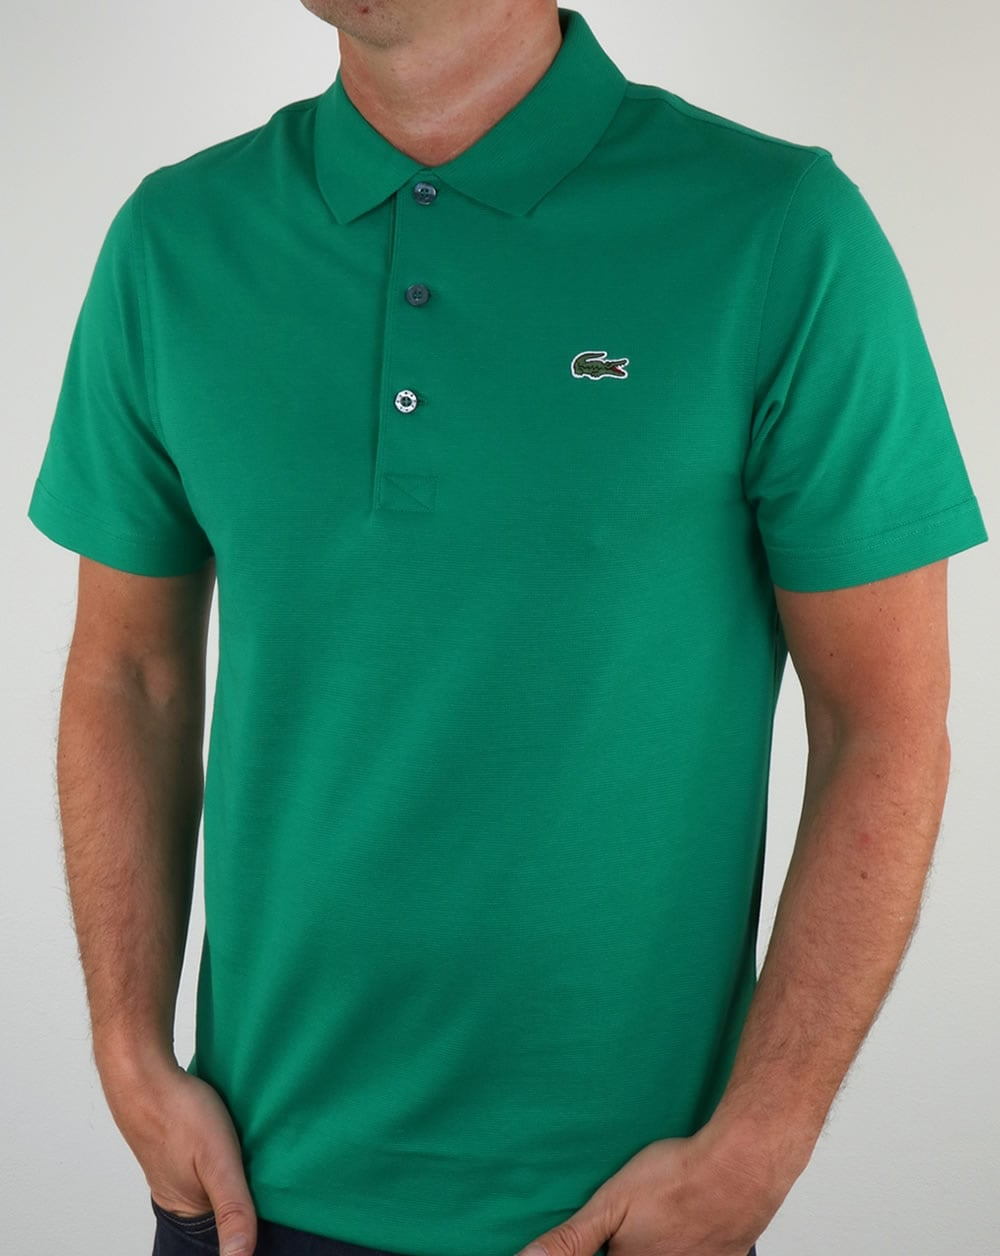 lacoste polo shirt woodland green men 39 s top. Black Bedroom Furniture Sets. Home Design Ideas